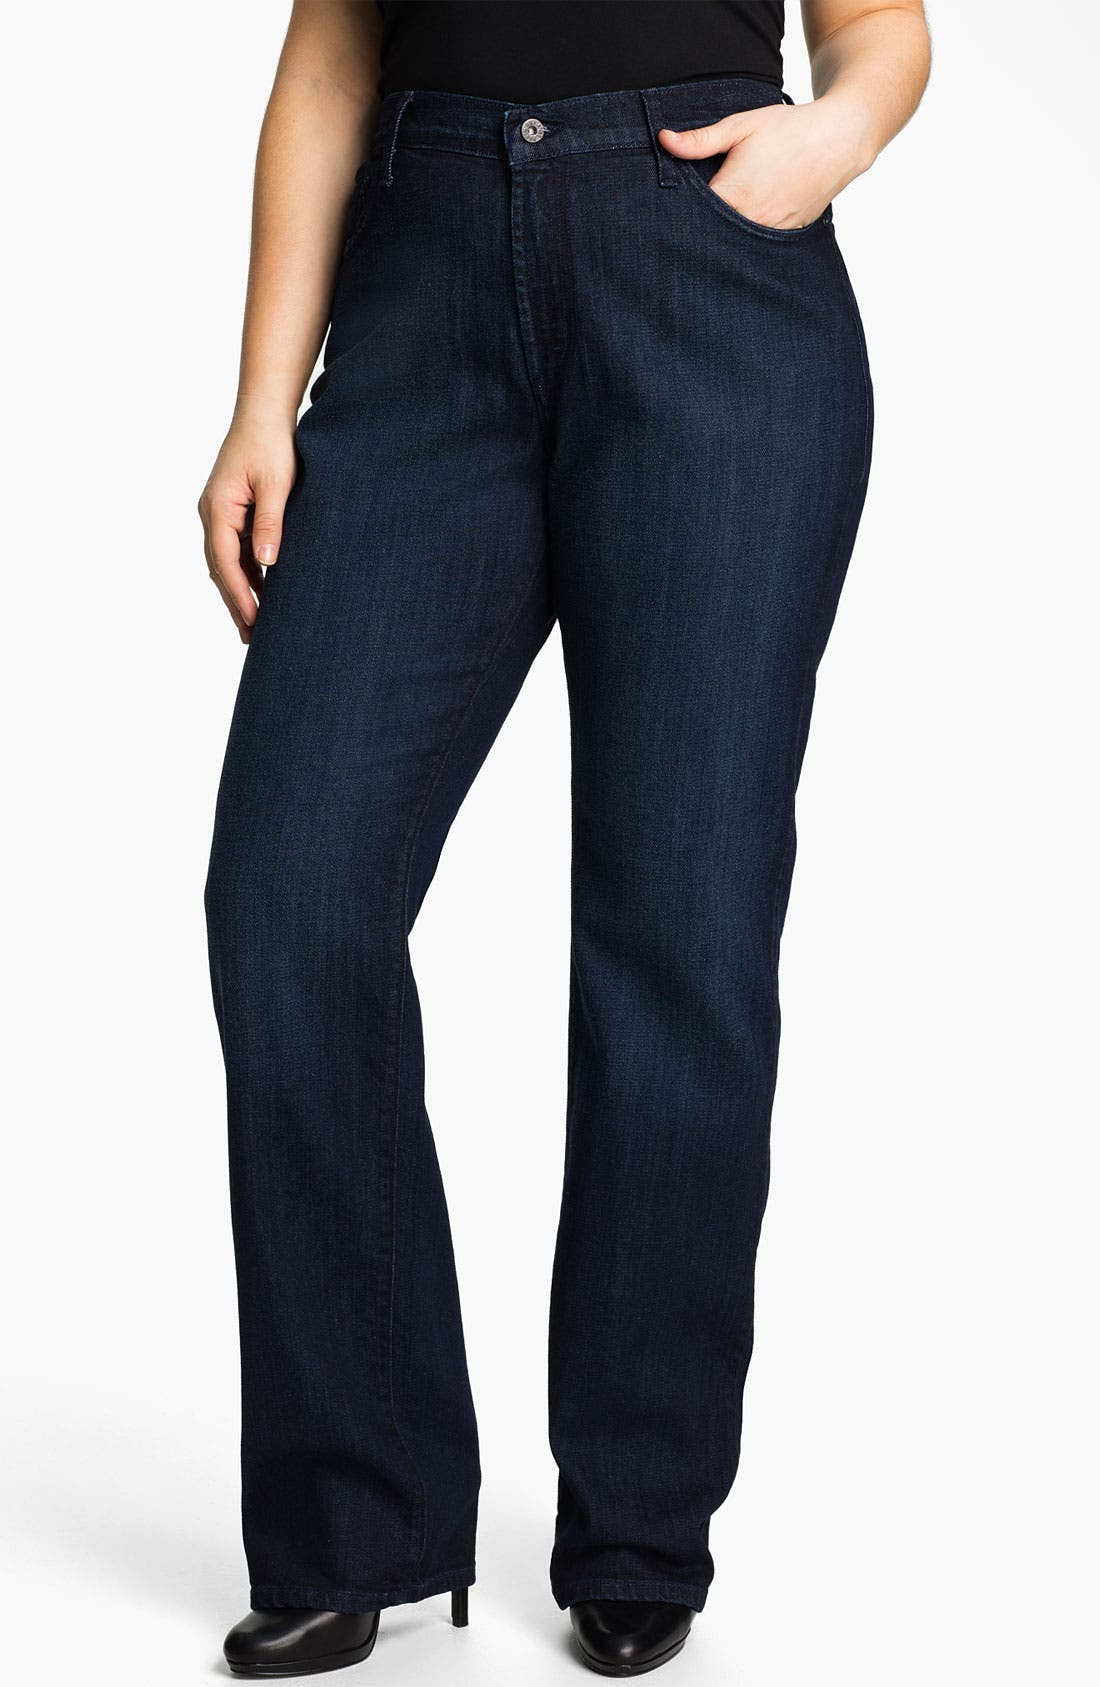 Alternate Image 1 Selected - James Jeans High Rise Straight Leg Jeans (Plus)